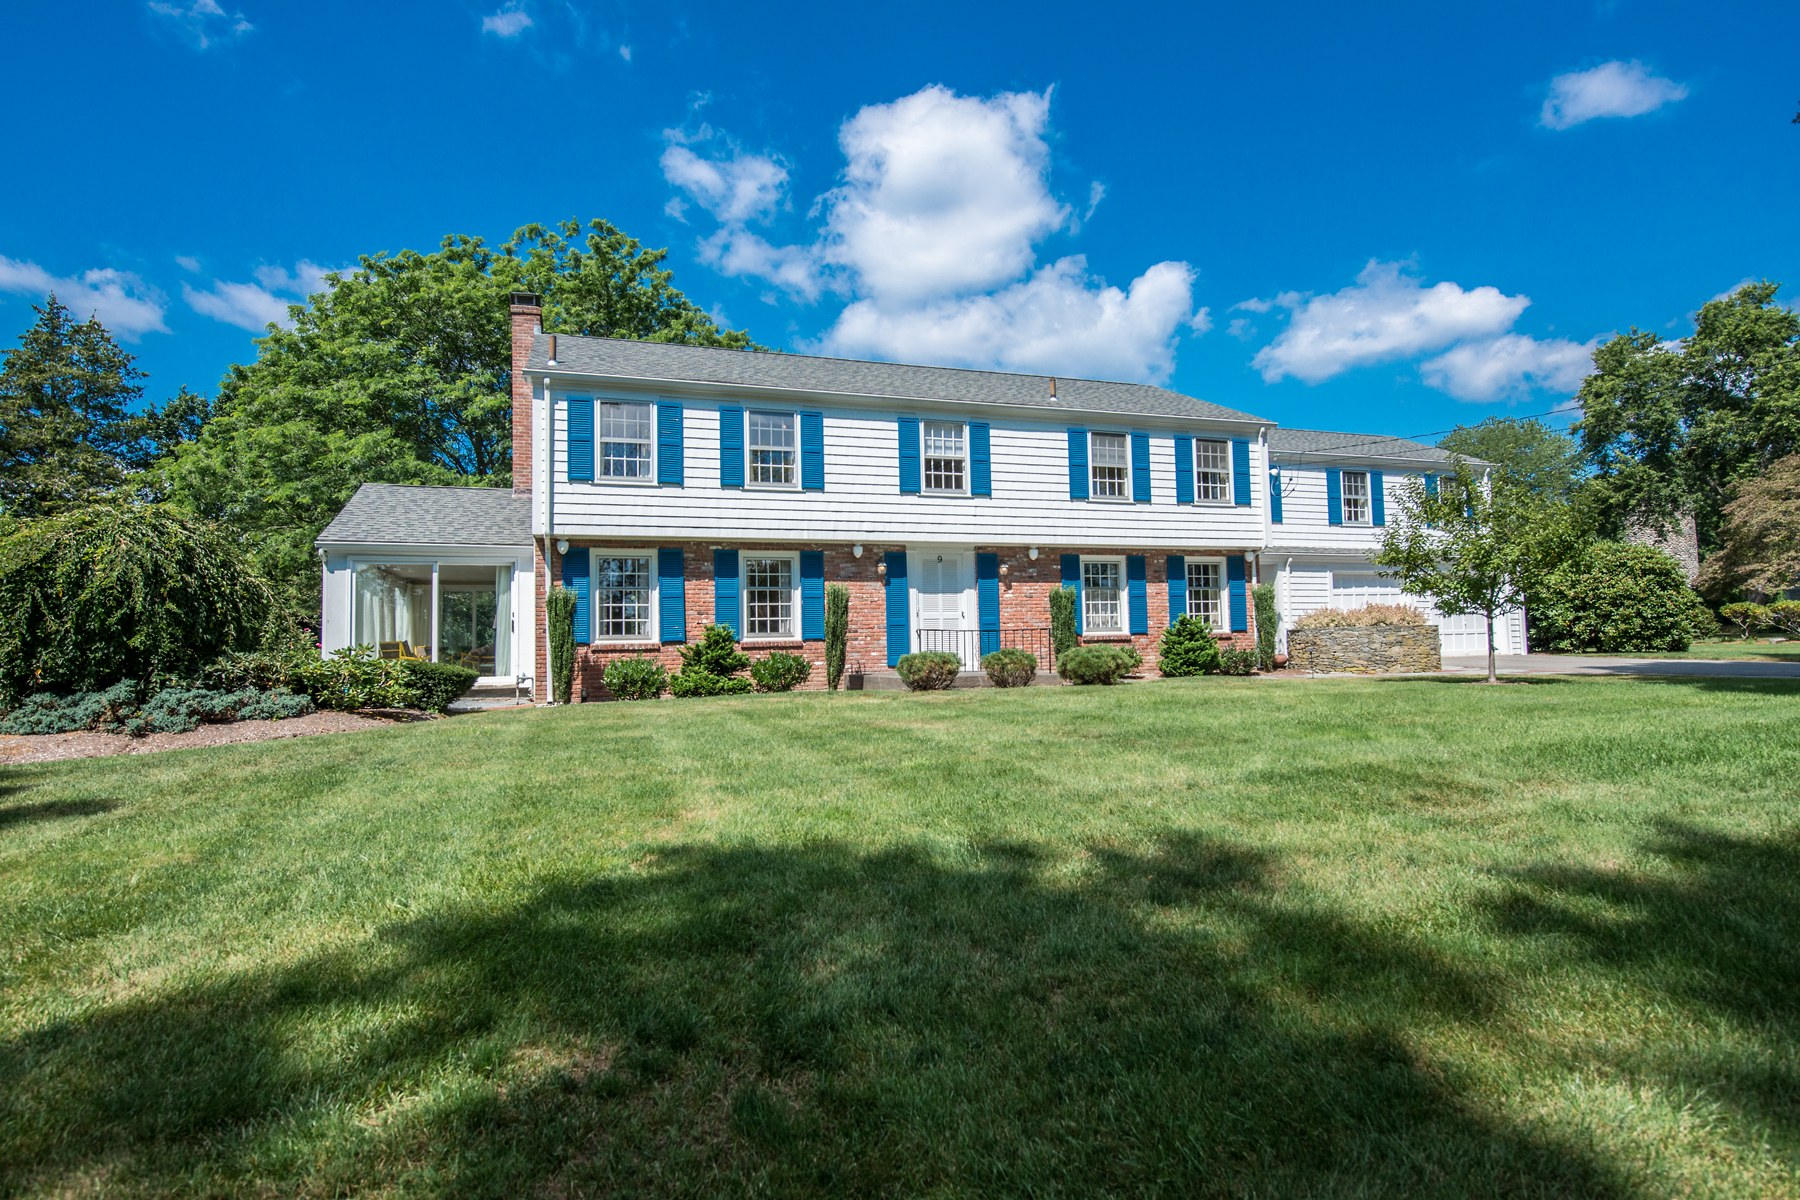 Single Family Home for Sale at 9 Stone Tower Lane, Barrington, RI 9 Stone Tower Lane Barrington, Rhode Island 02806 United States